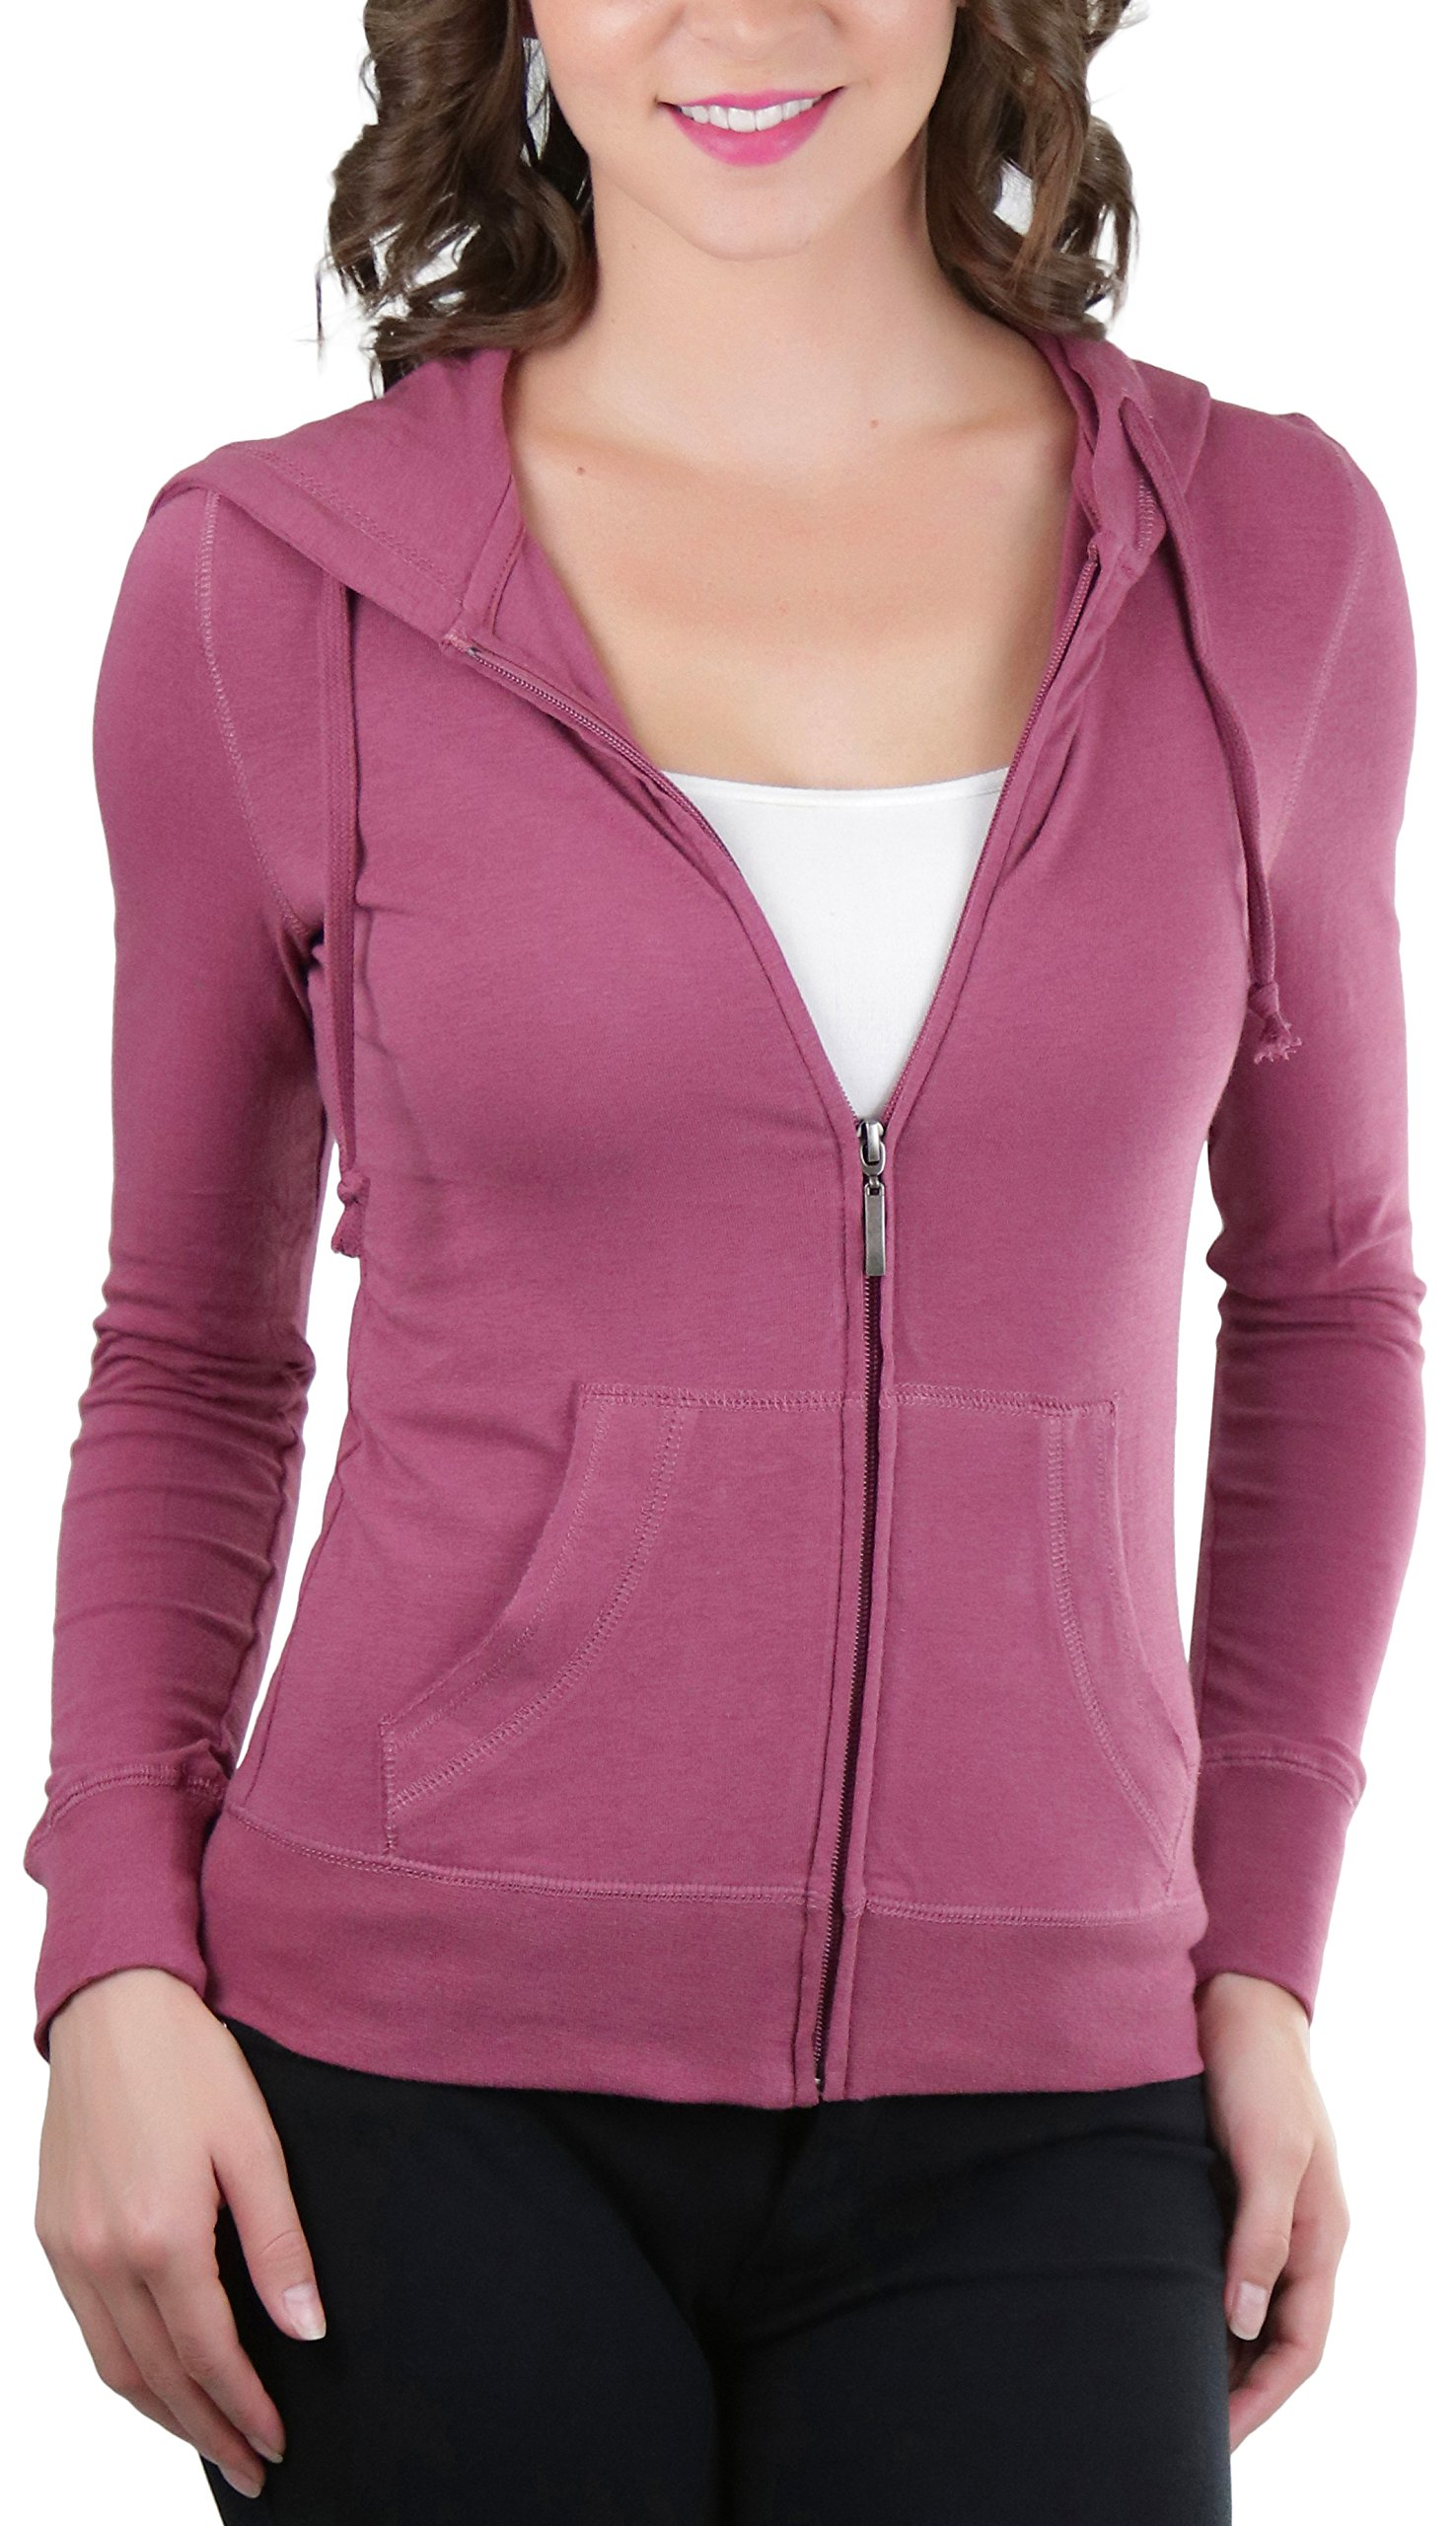 ToBeInStyle Women's L.S. Zip-Up Drawstring Hoodie - Mauve - Large